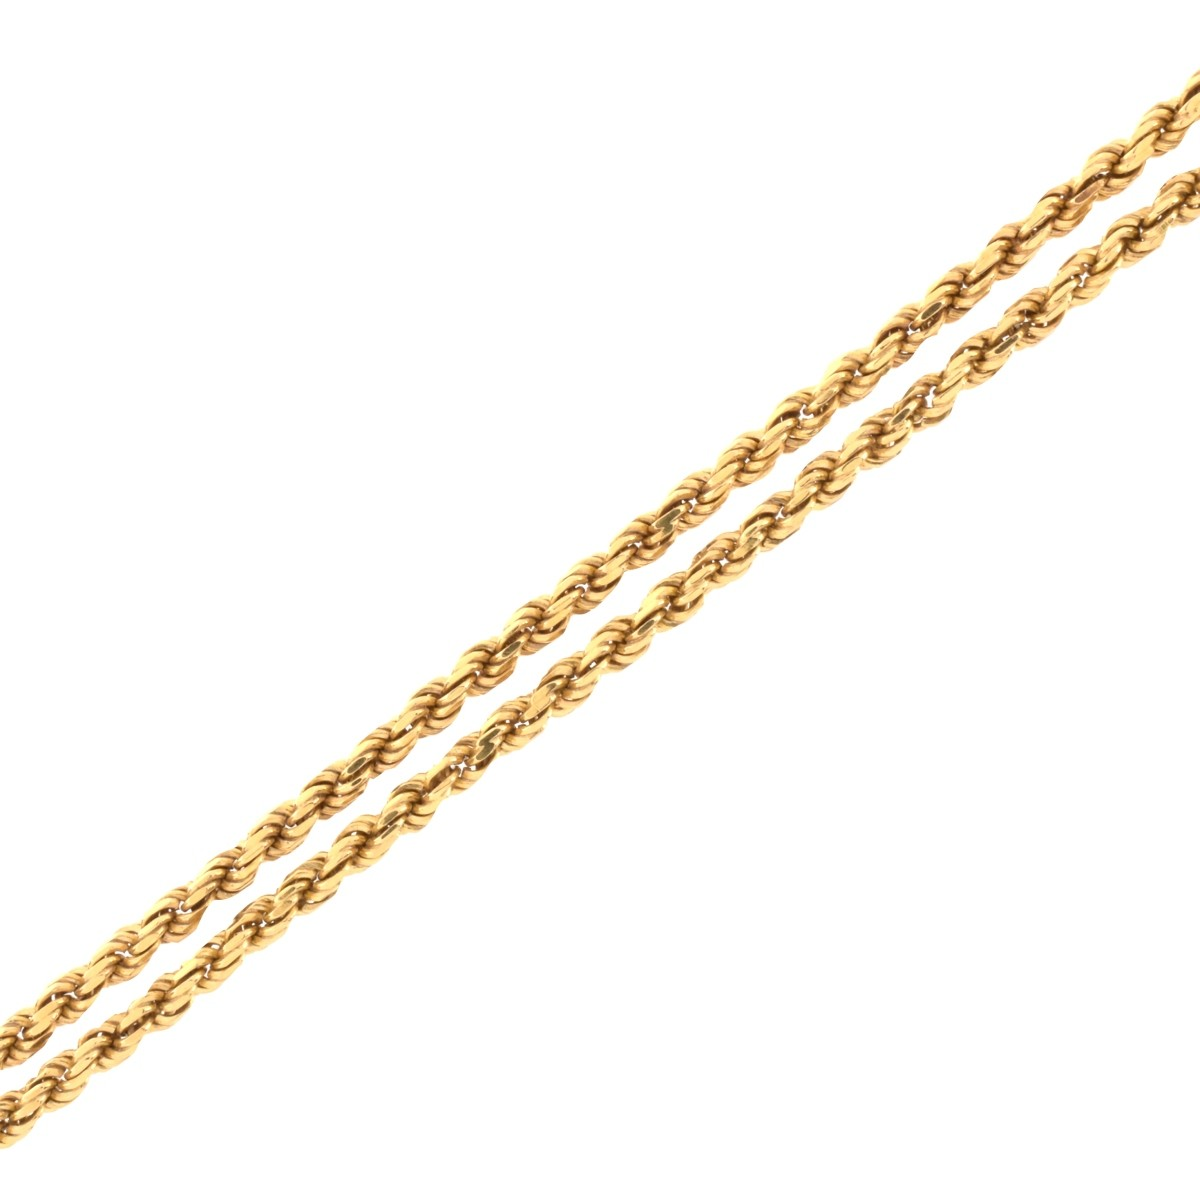 14K Necklace / Chain